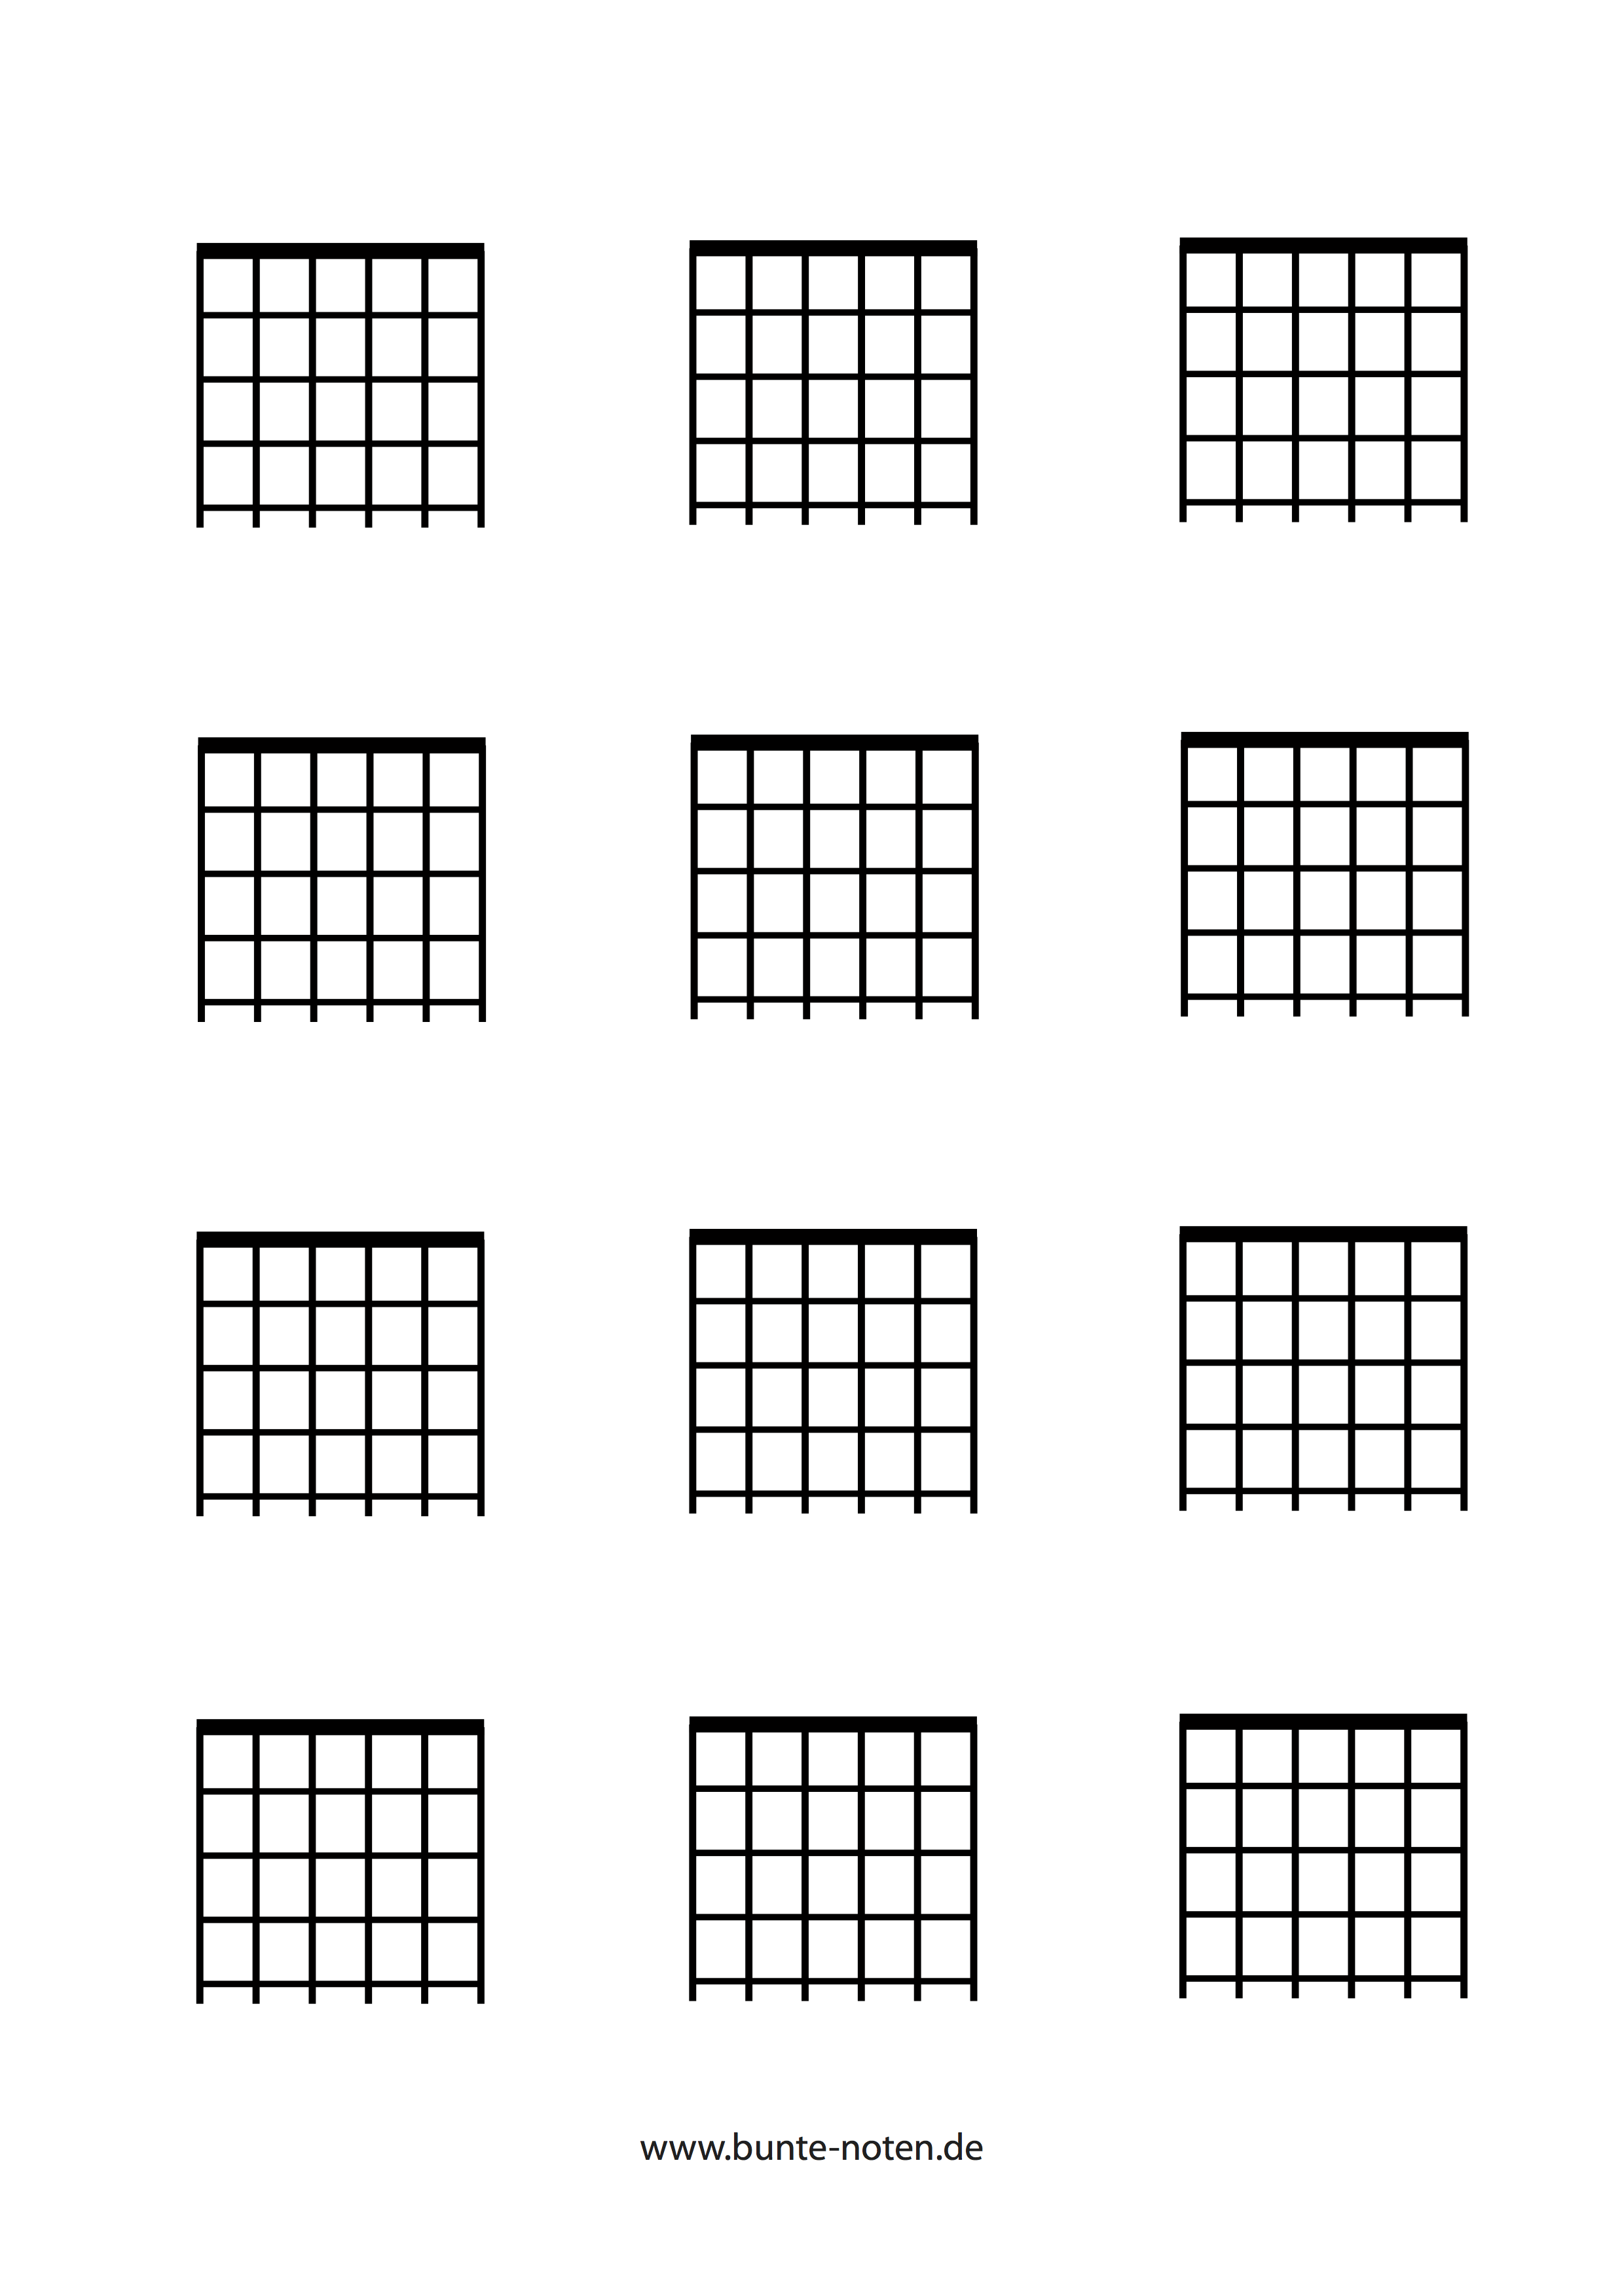 A chord for guitar